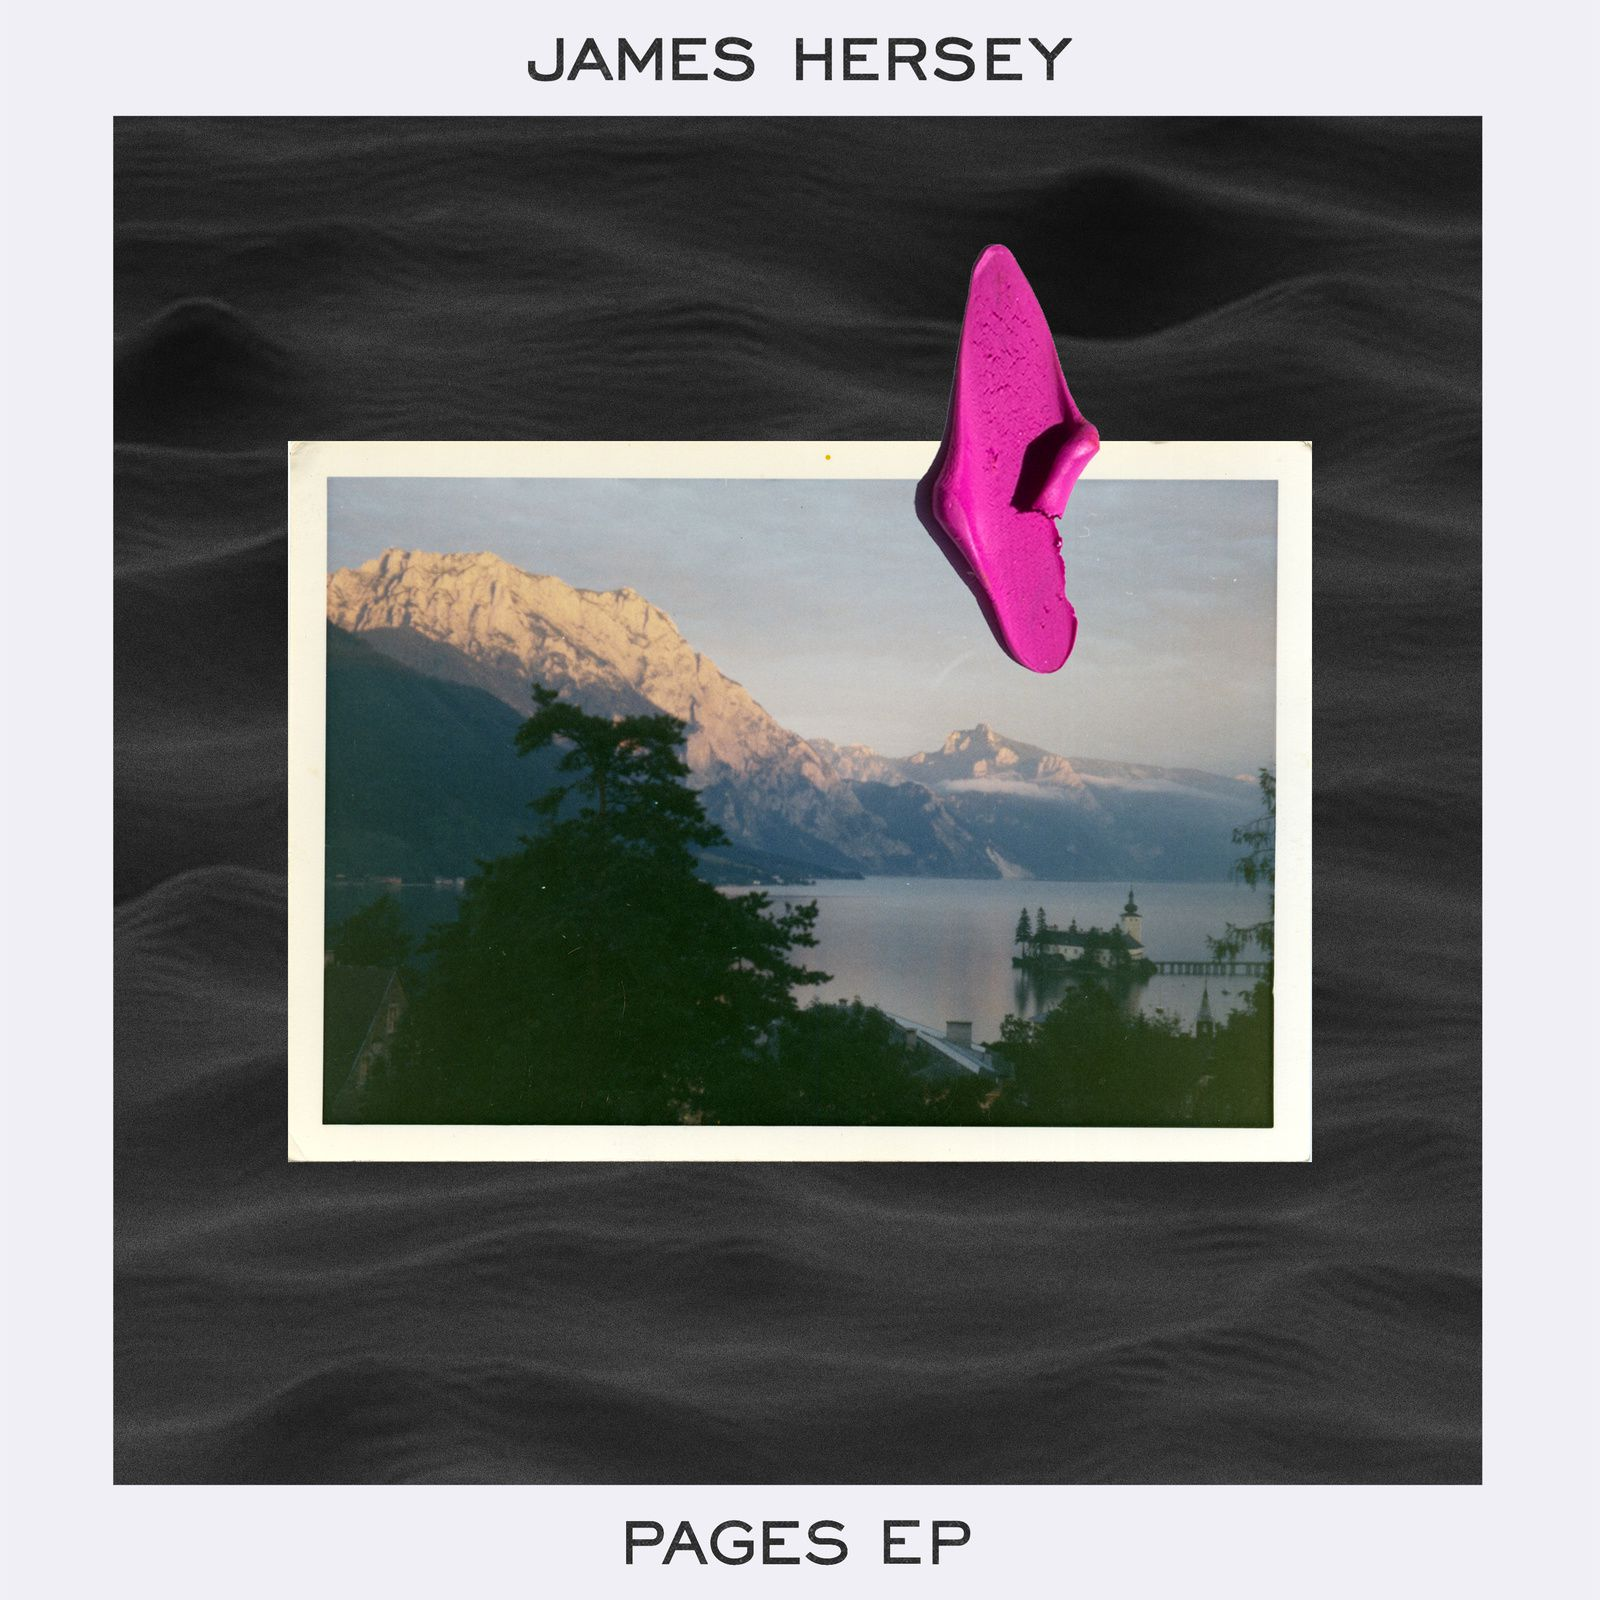 james hersey, pages ep